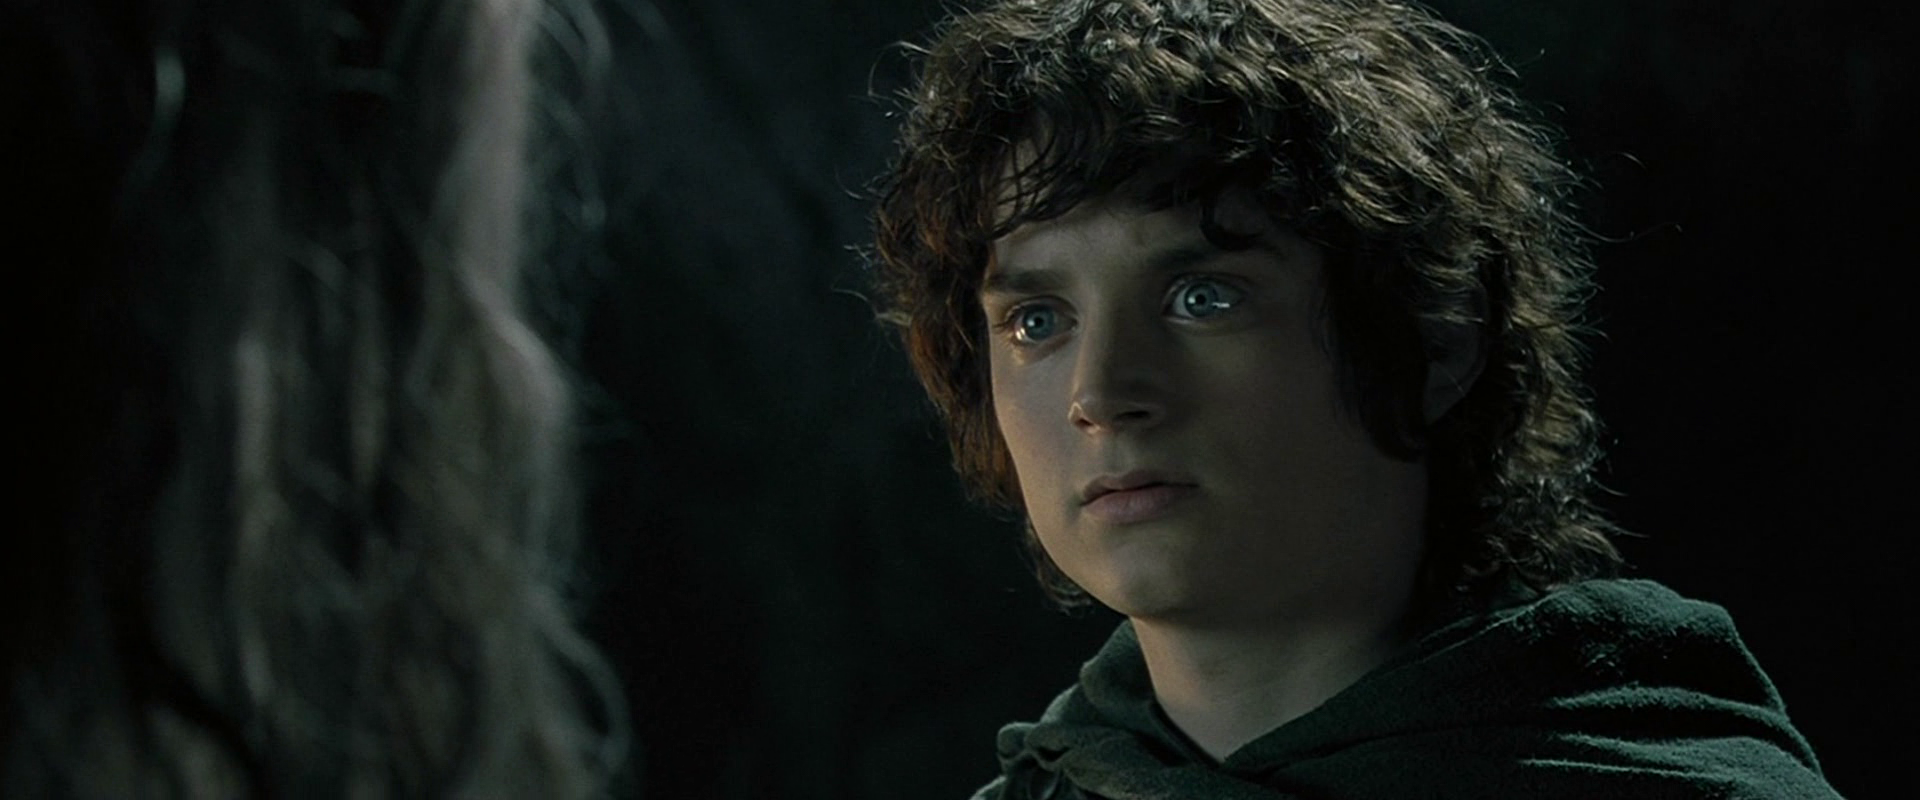 Elijah Wood S Role In Lord Of The Rings